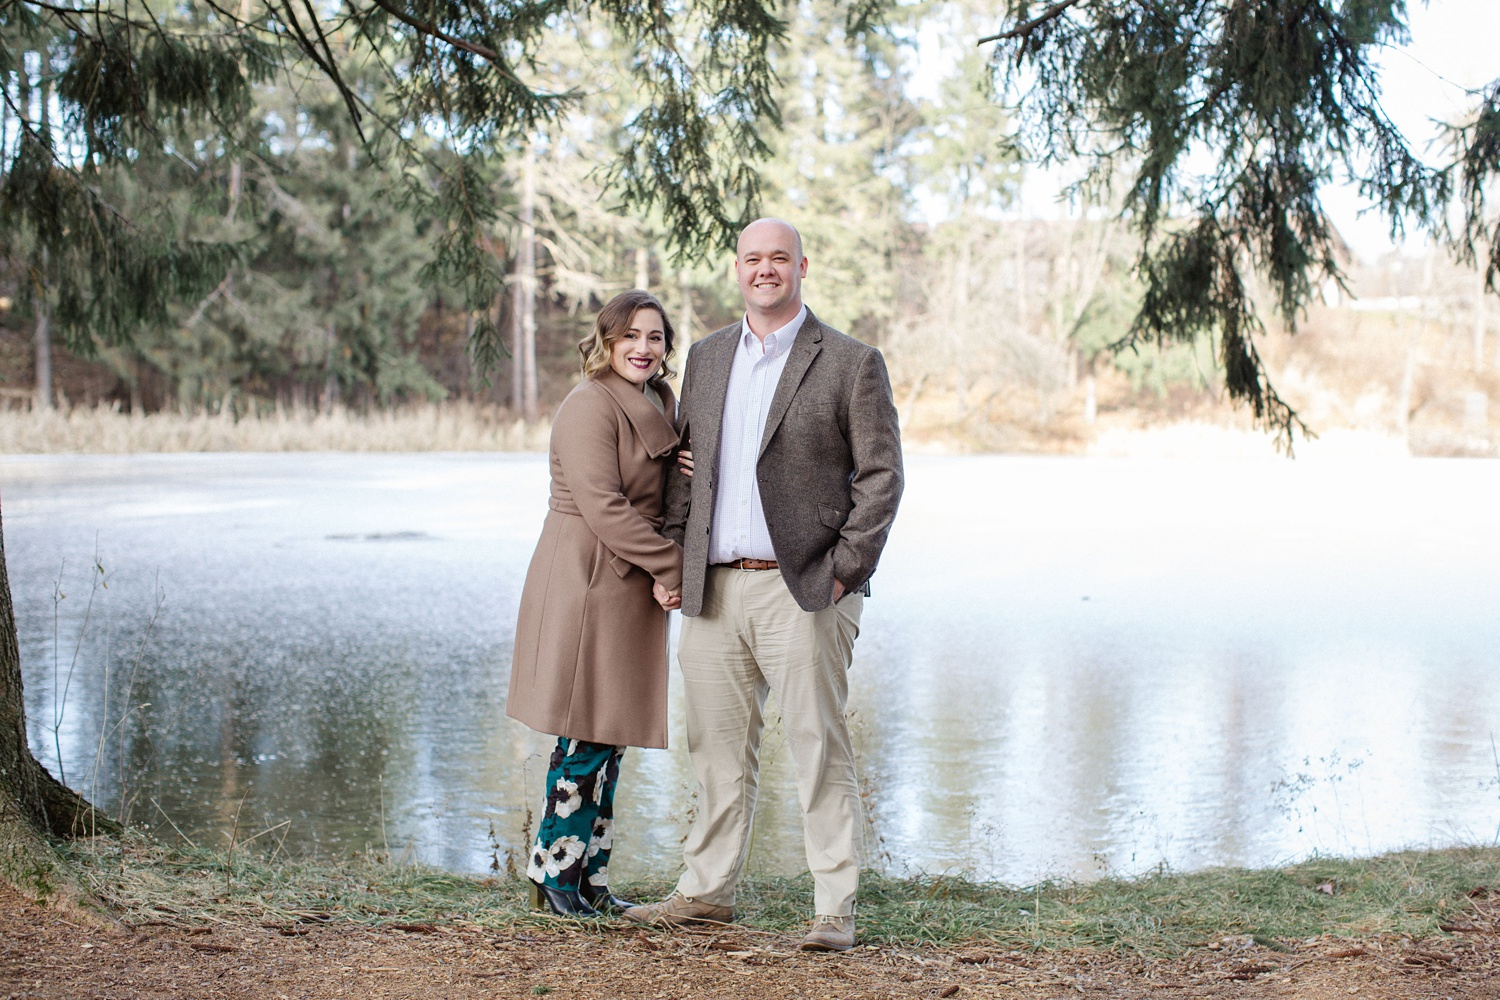 Clarks Summit PA Engagement Session Anniversary Photos_0004.jpg